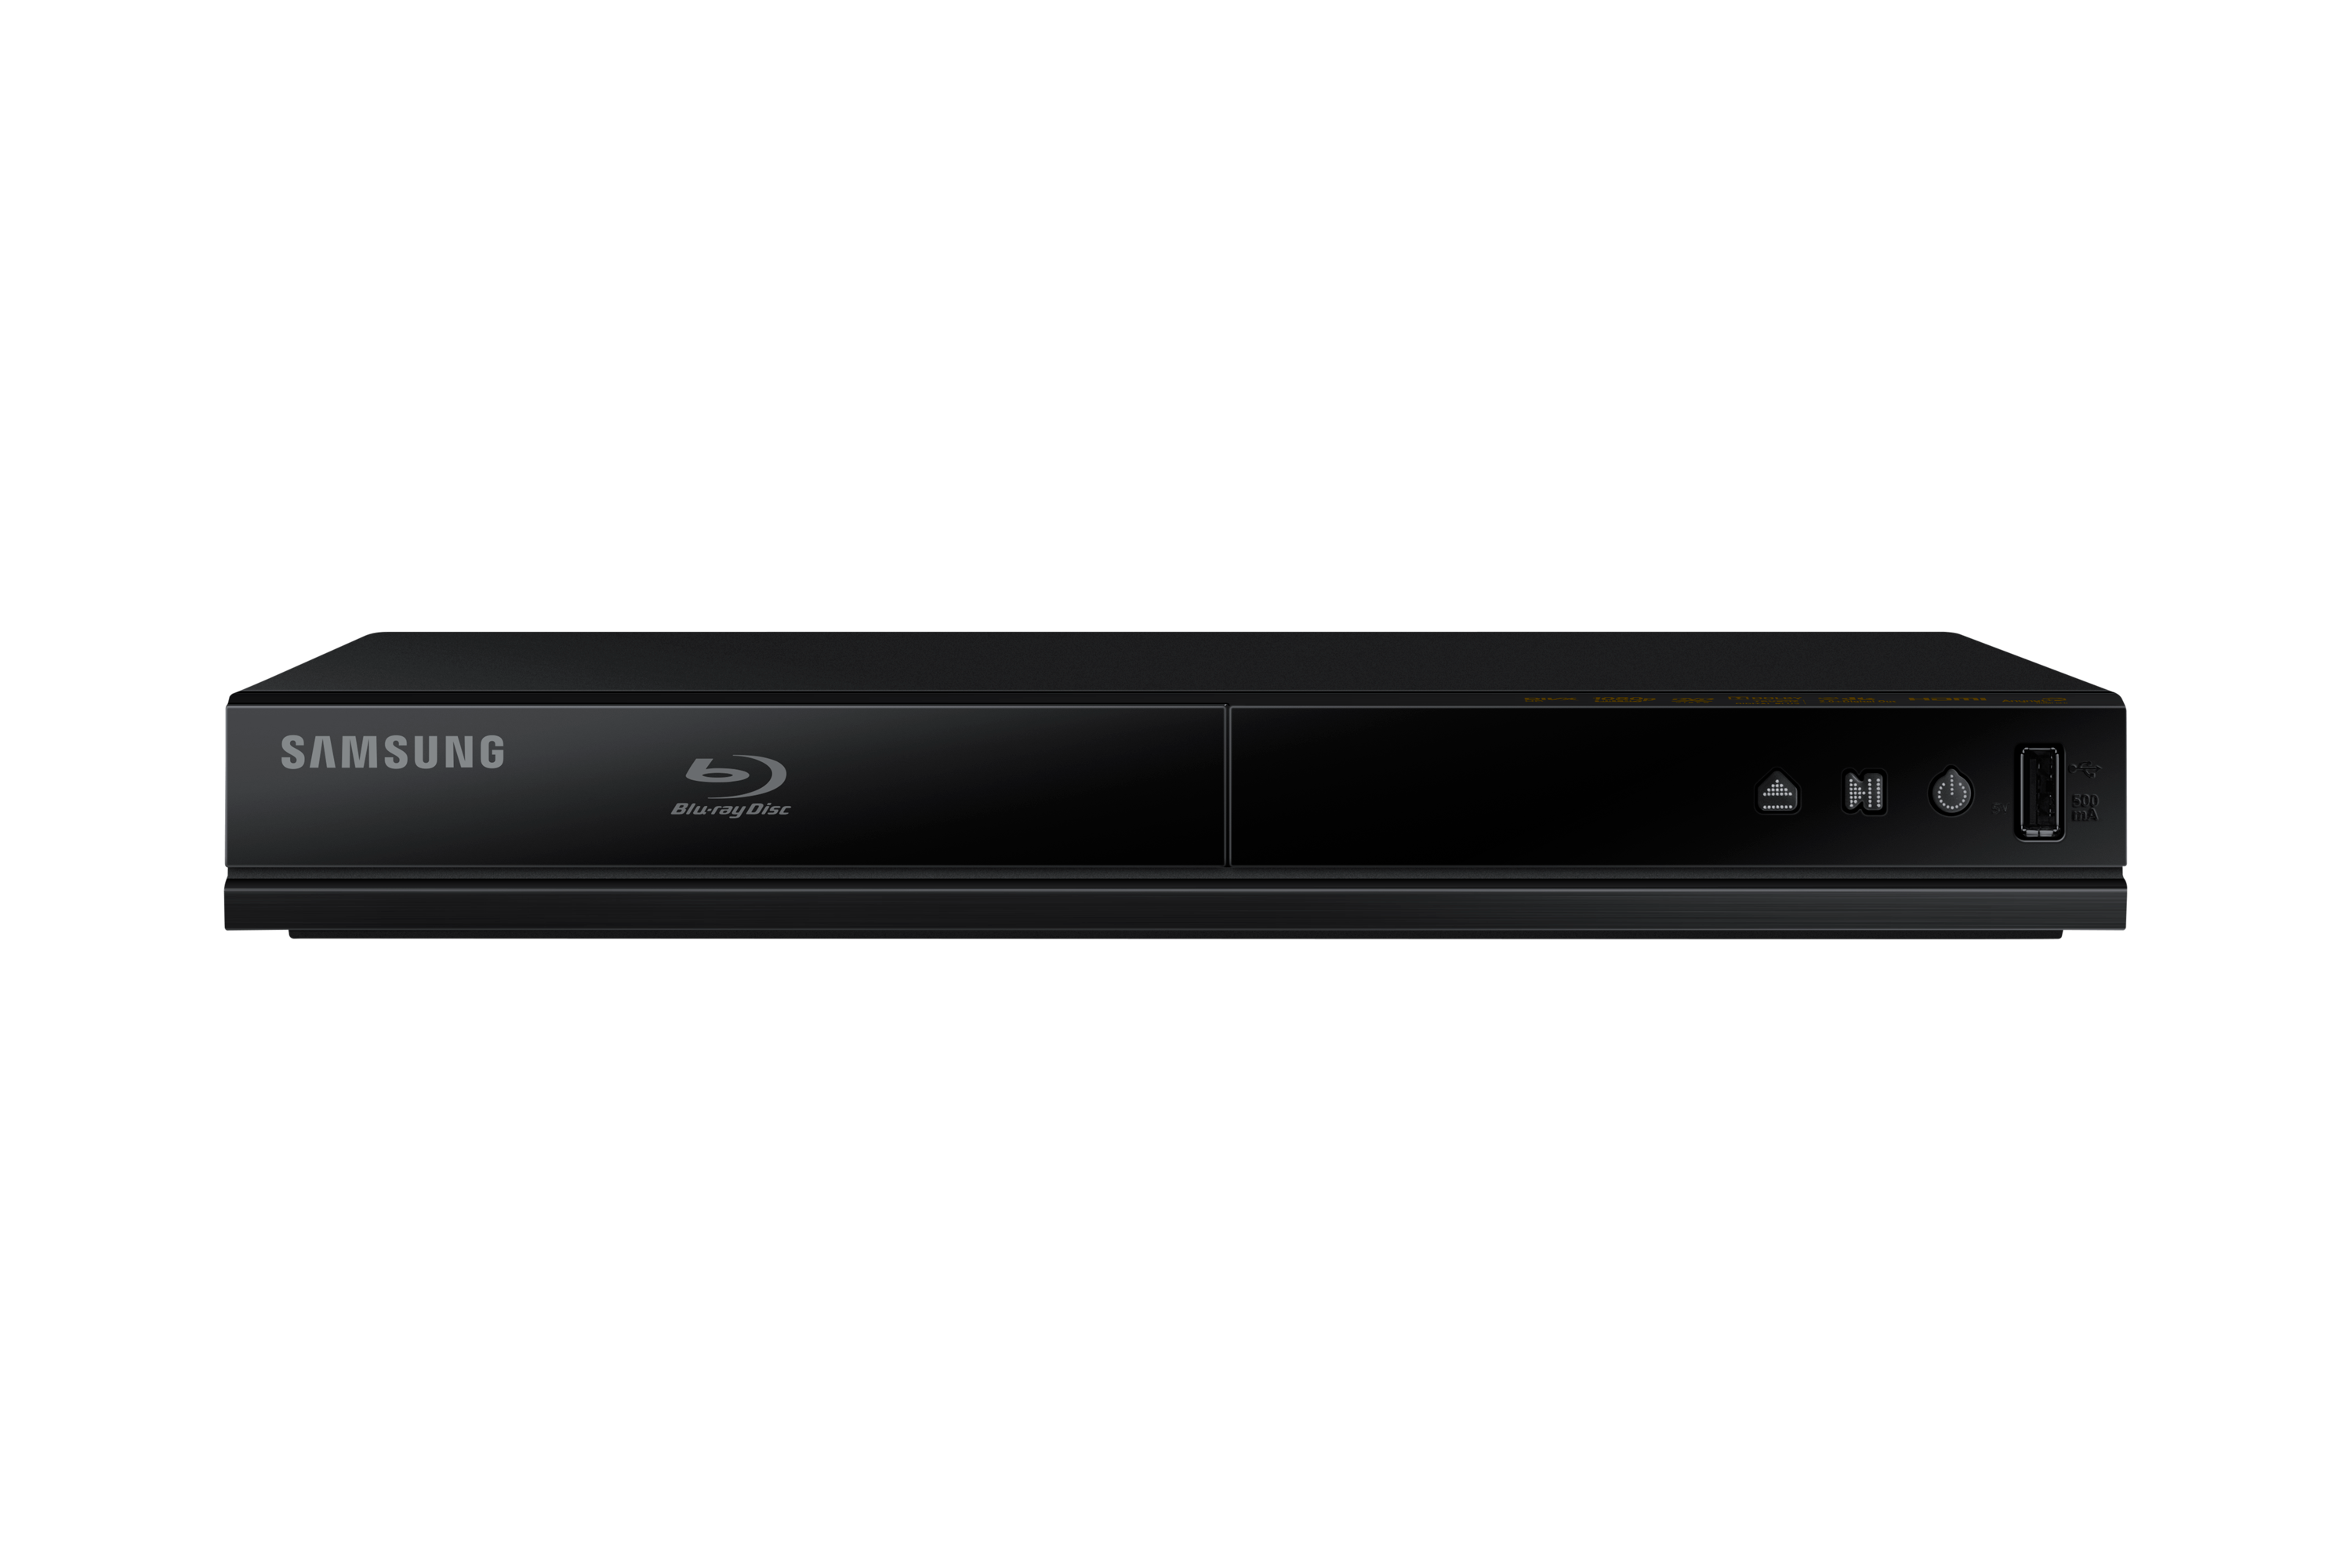 Series 4 Blu-ray player H4500